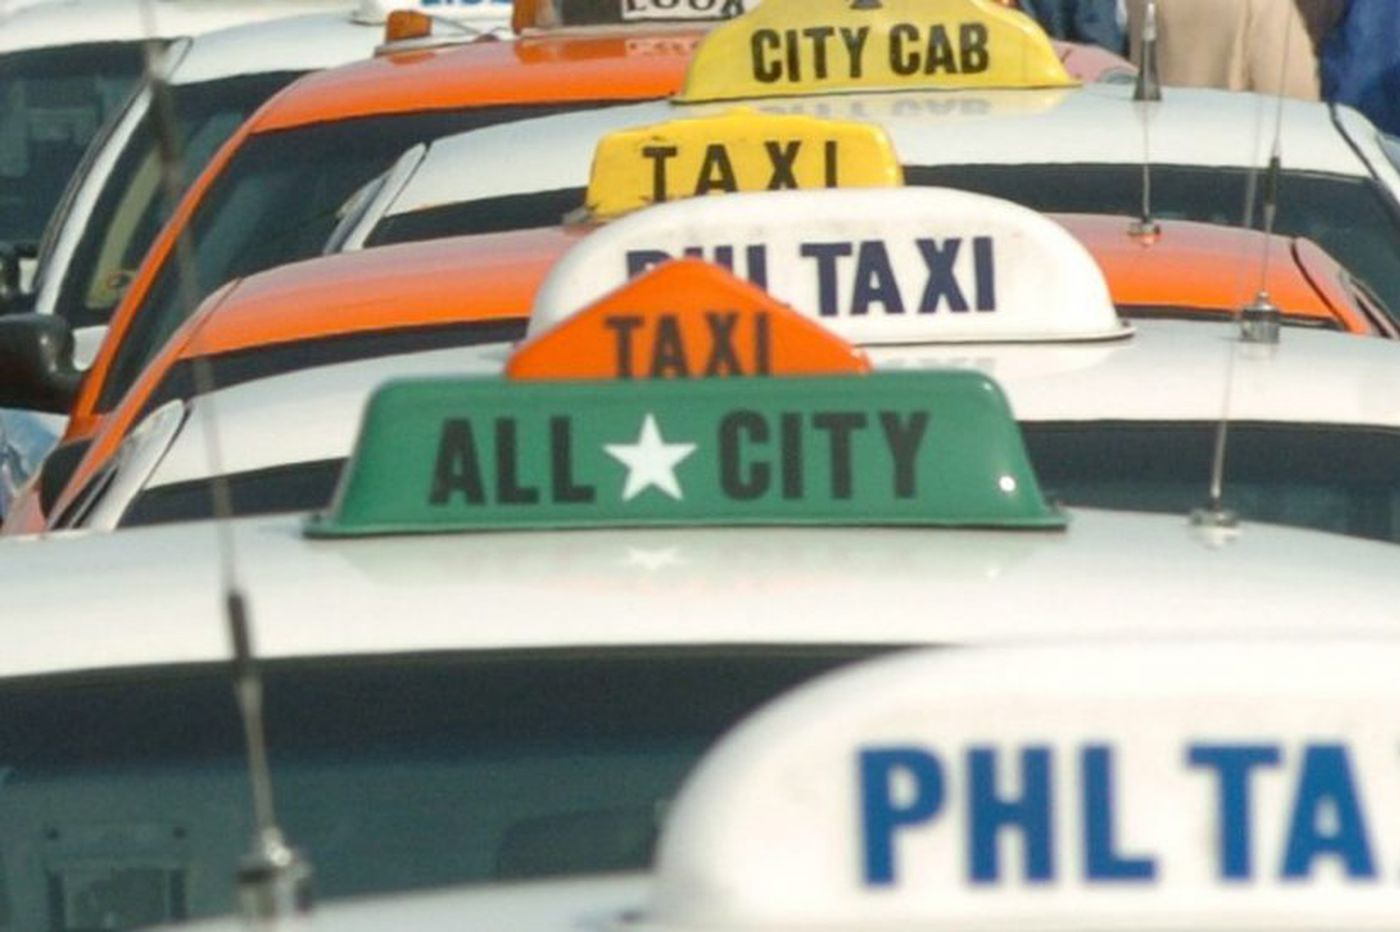 Cabs becoming chaotic as the PPA cuts staff